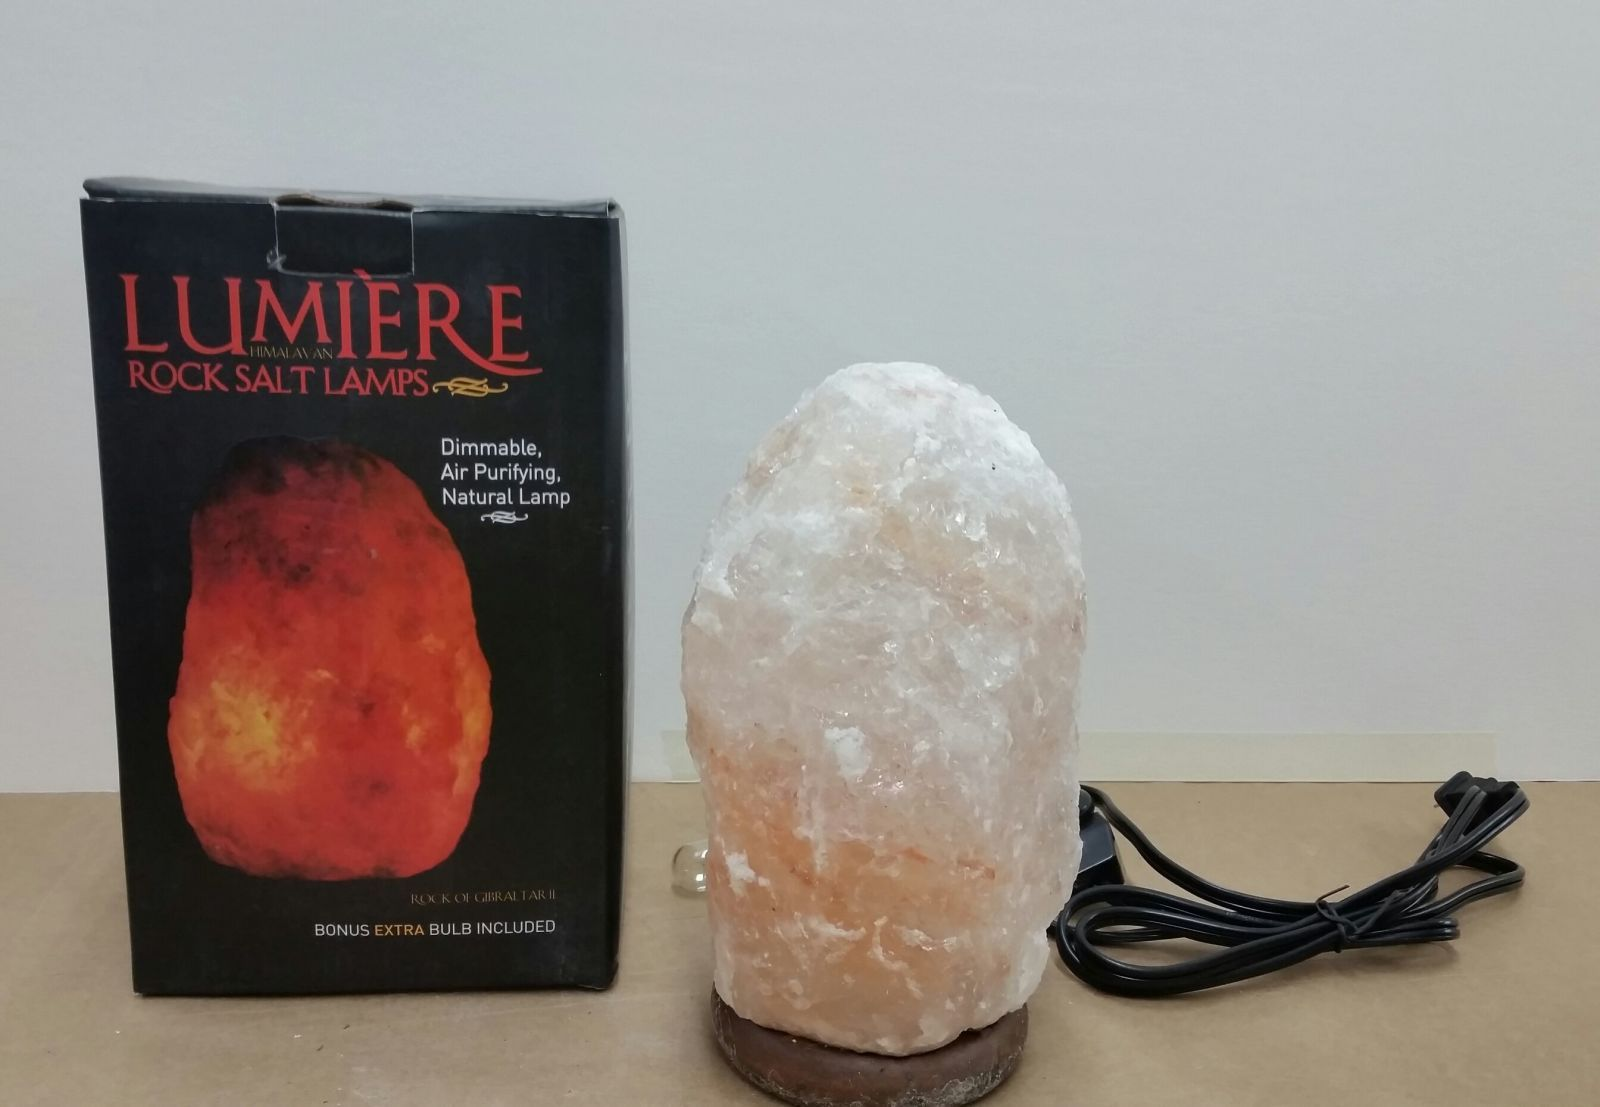 Lumiere Salt Lamp Himalayan Rock Salt Lamps Recalled For Fire Electric Shock Risks